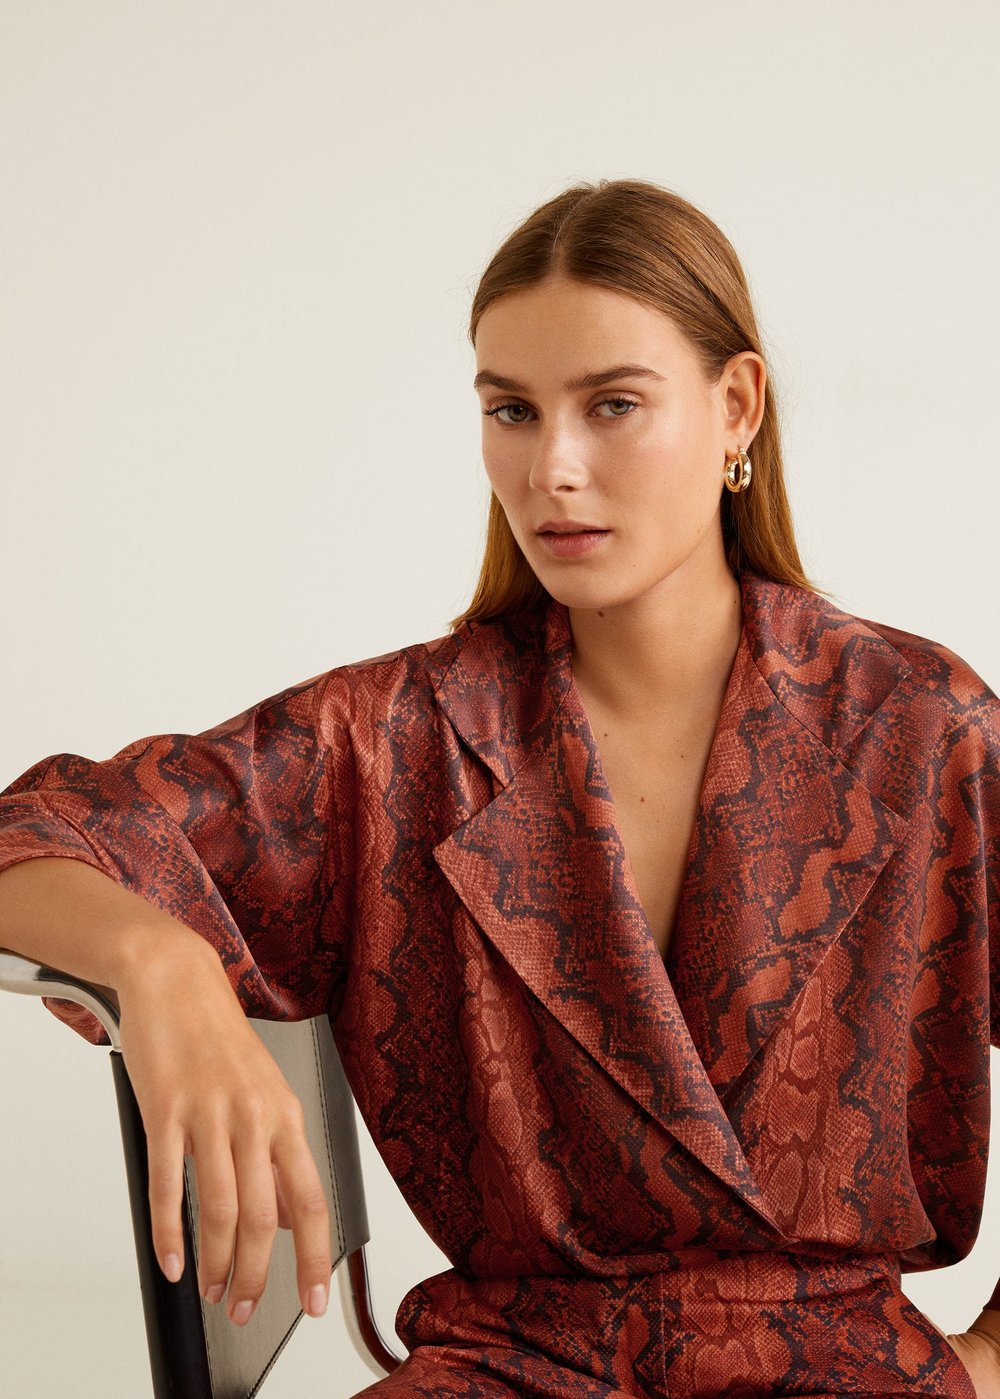 Mango Snake Print Shirt - £49.99 at MangoThe oversized lapels on this shirt bring a menswear edge to this statement top. It's definitely pricey, but you'll get a lot of use out of it.